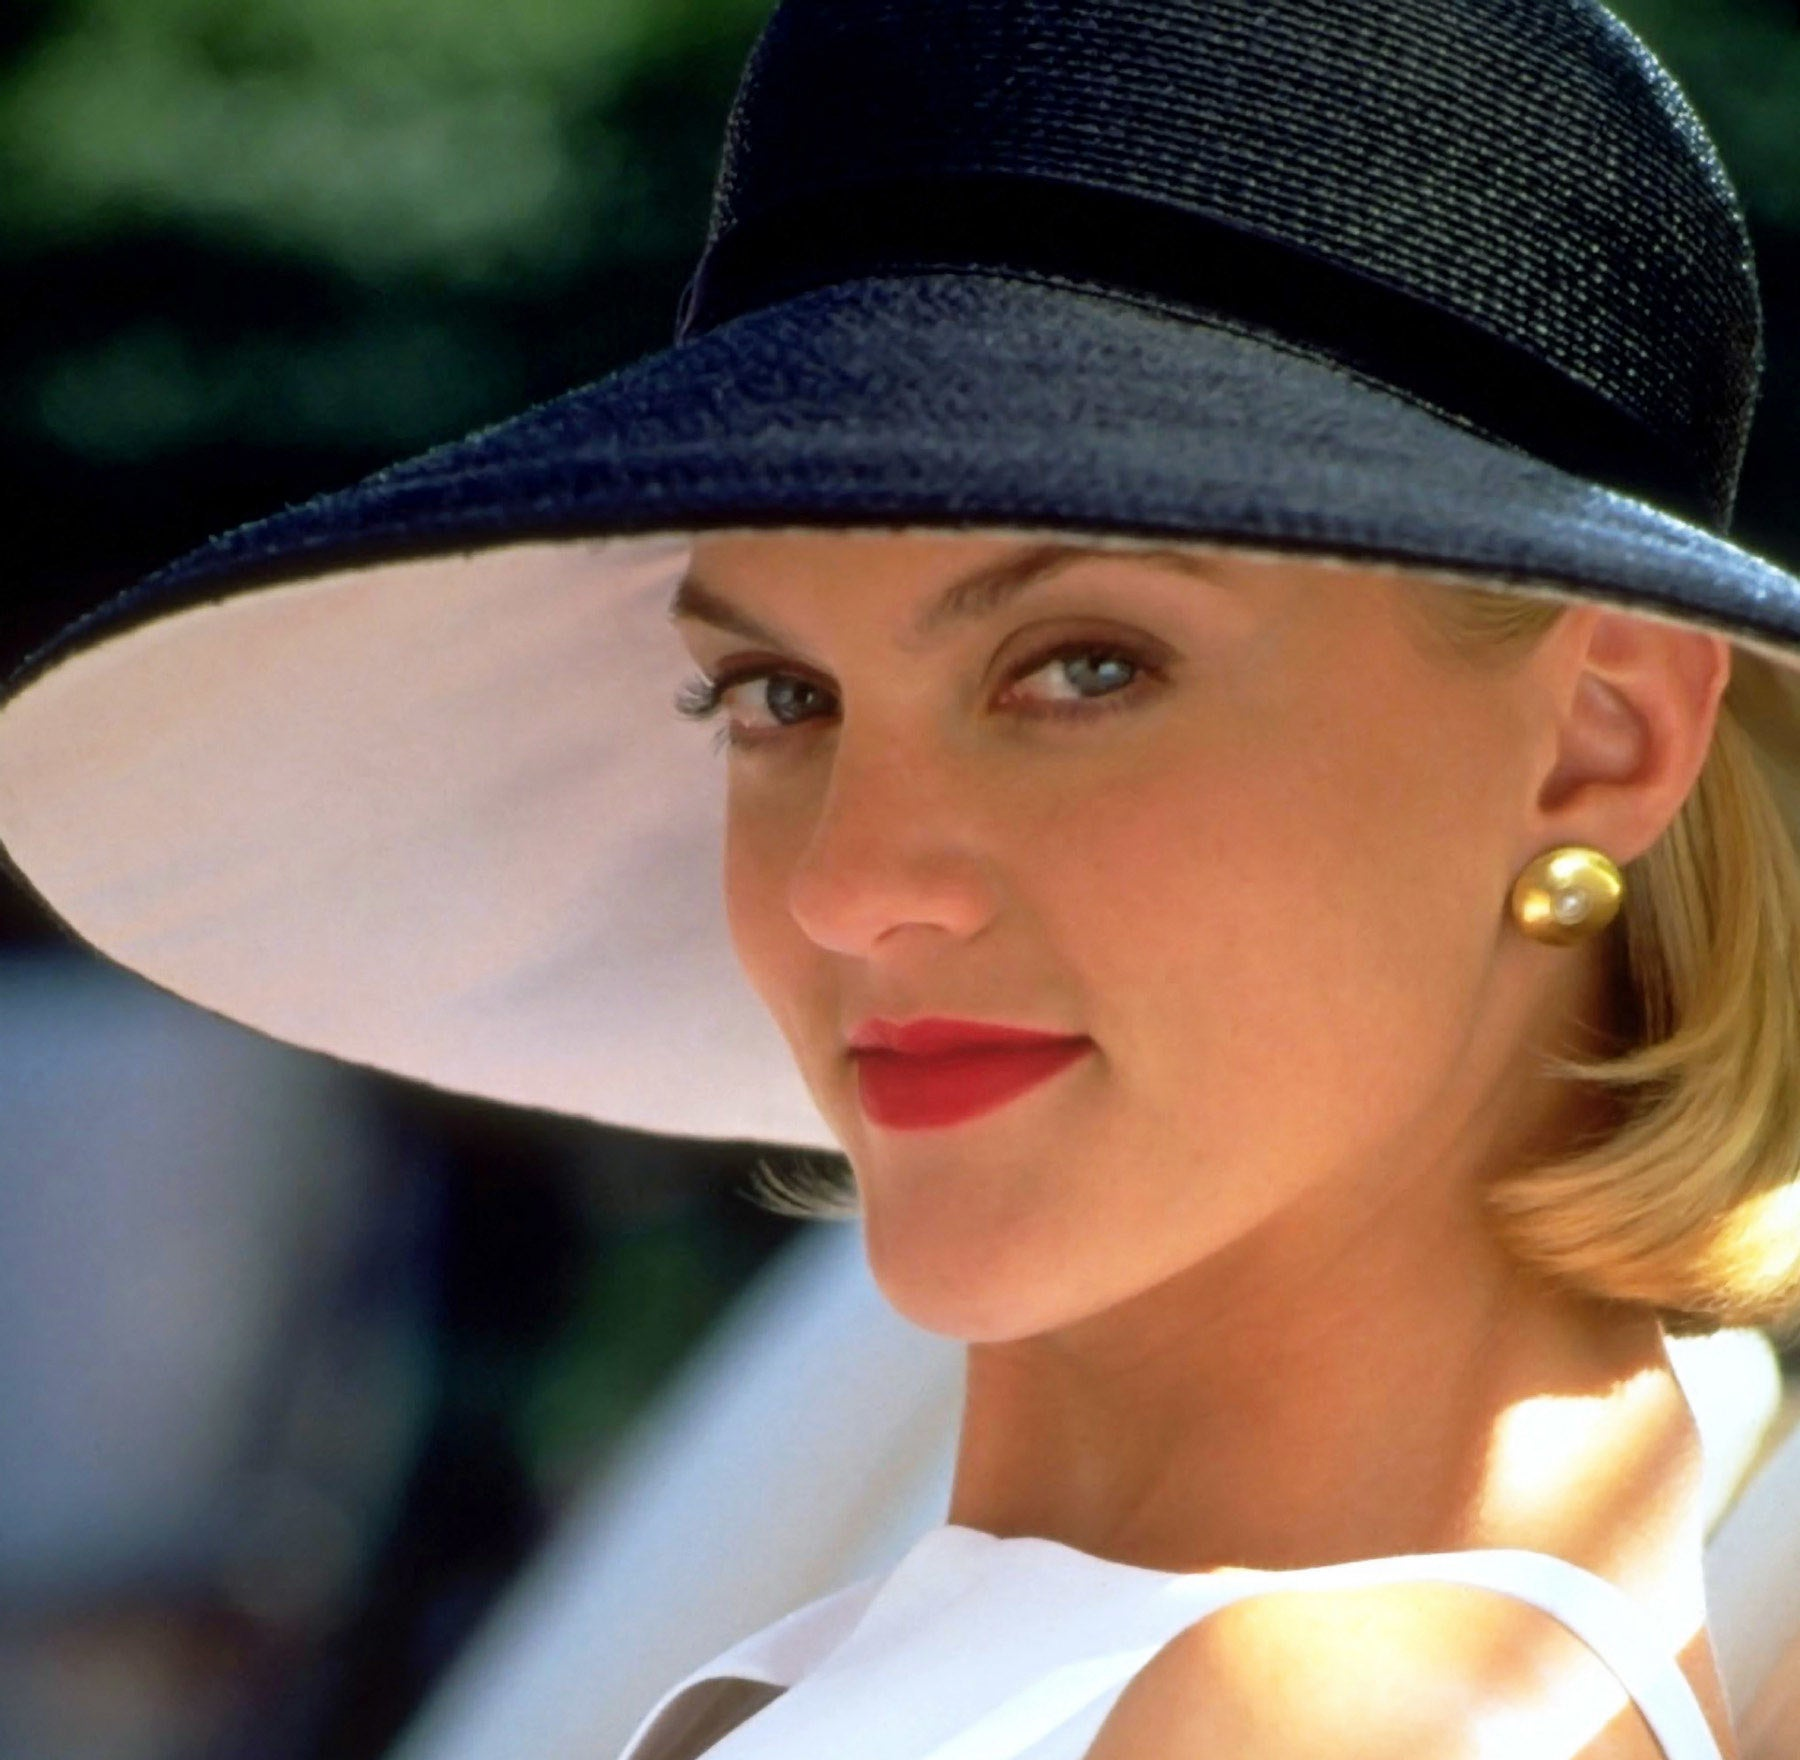 Photo of Meredith smirking while wearing a large black hat